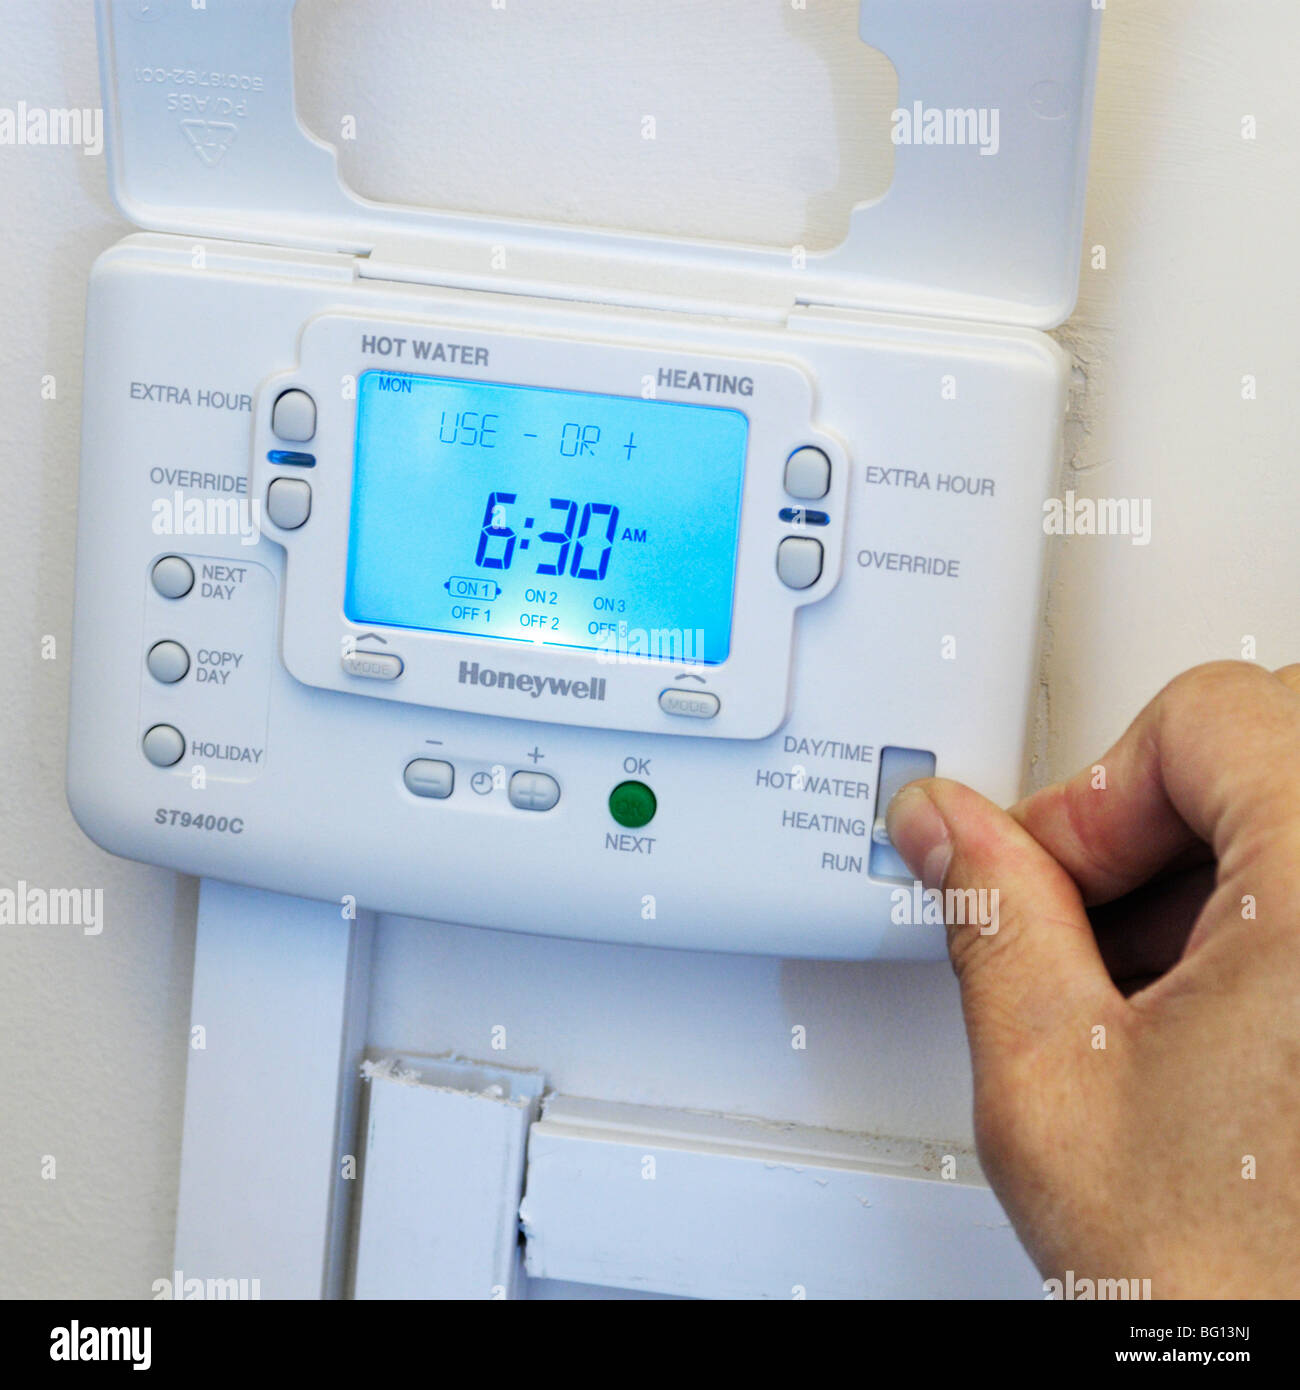 Central Heating System Stock Photos & Central Heating System Stock ...